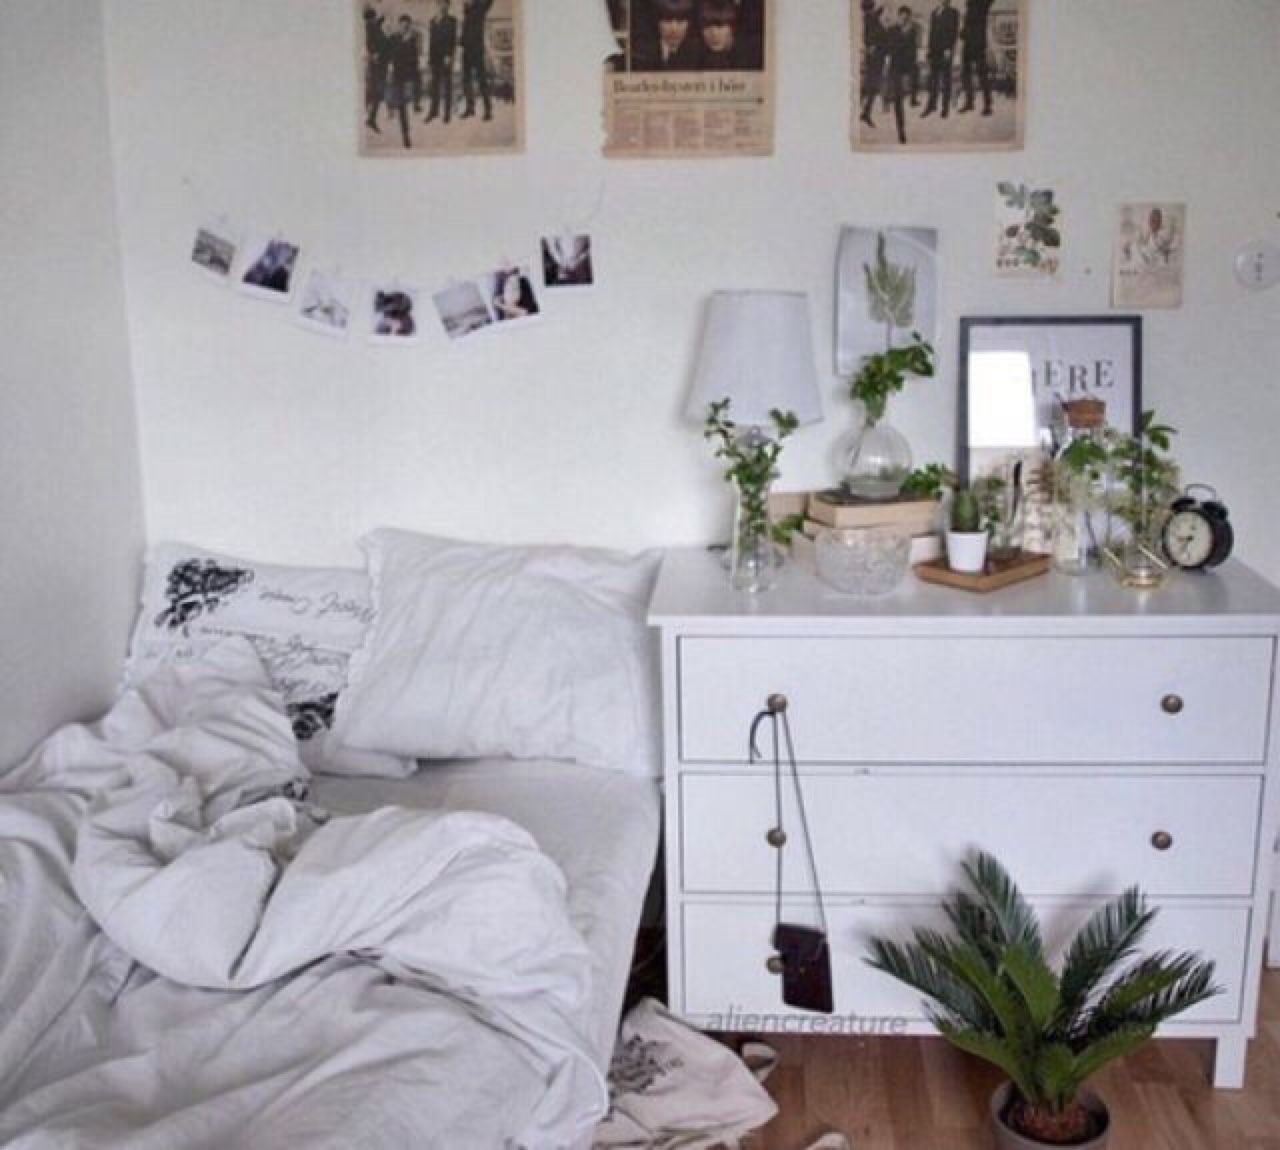 Kpop Bedroom Tumblr Aesthetic Tumblr Grunge Room Google Search Room